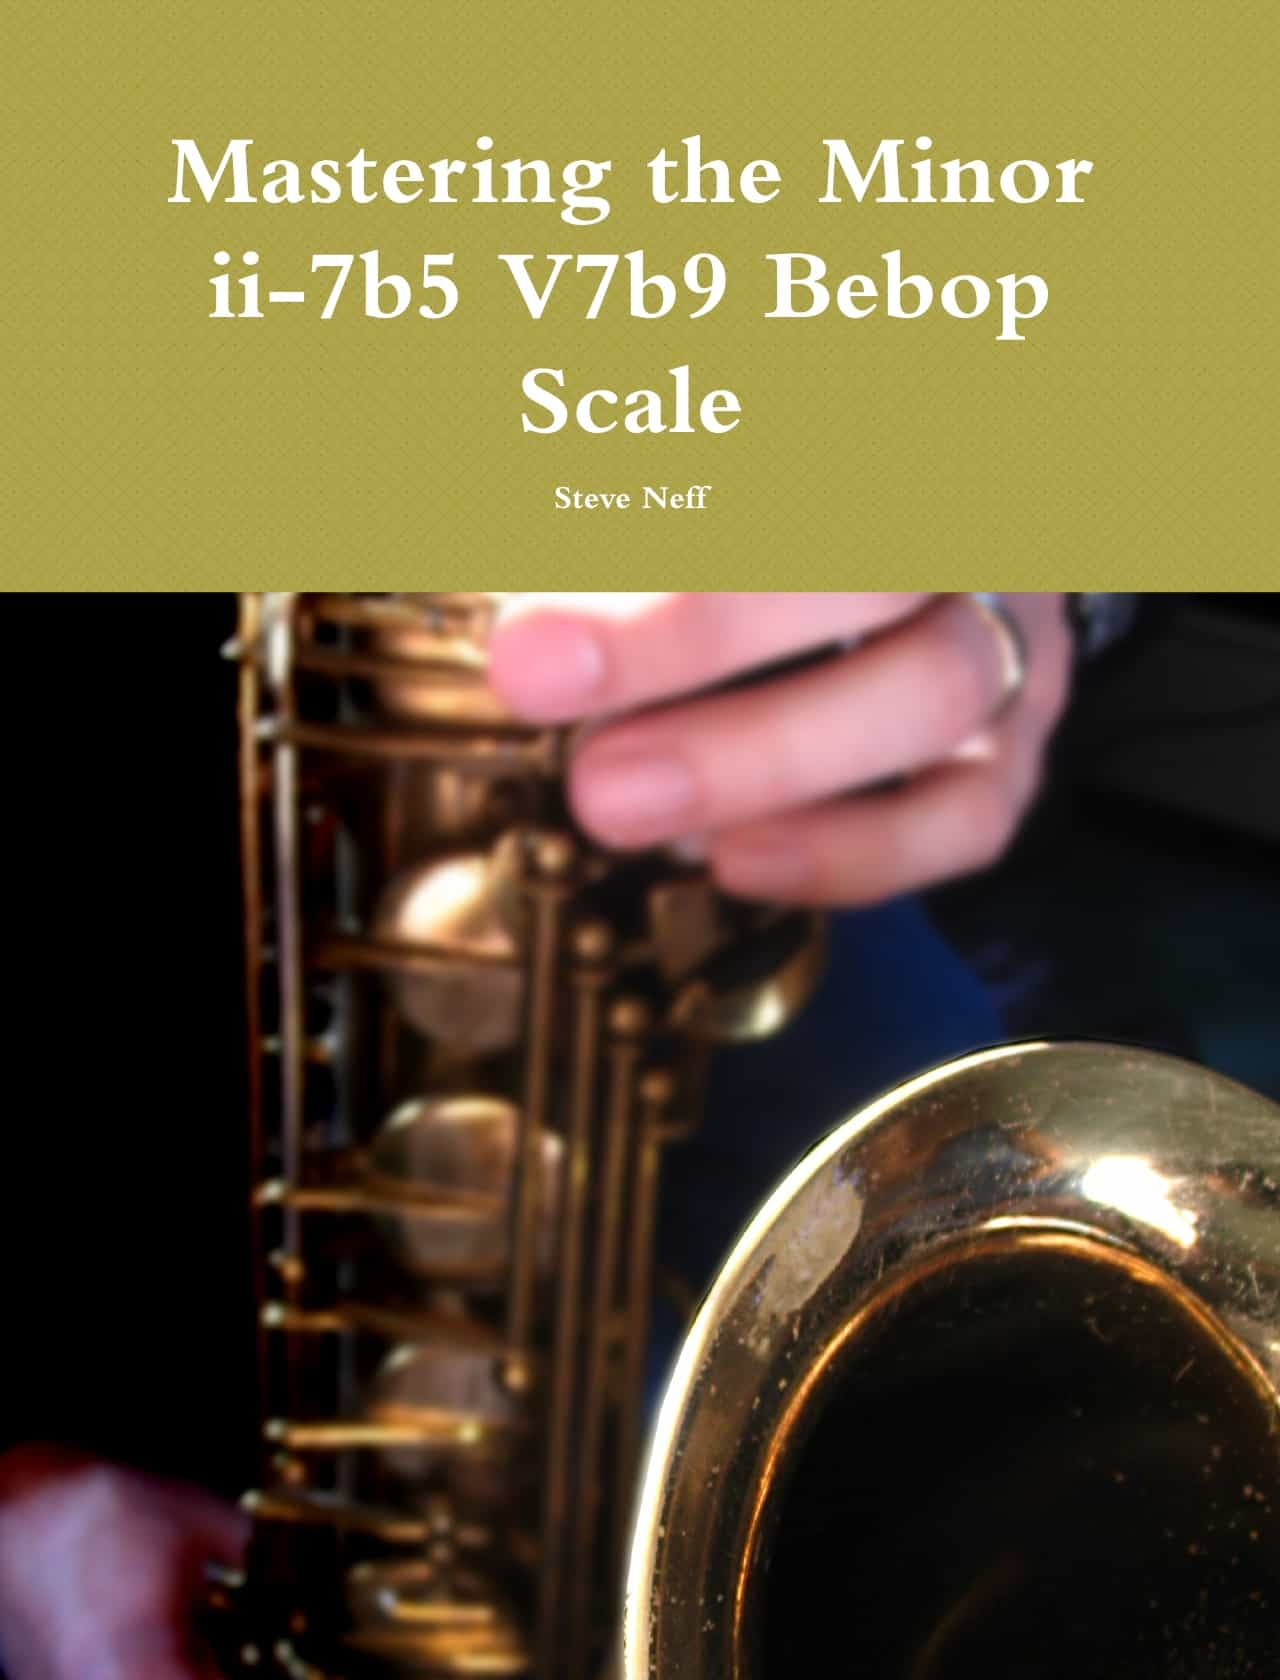 NEW Book-Mastering the Minor ii-7b5 V7b9 Bebop Scale